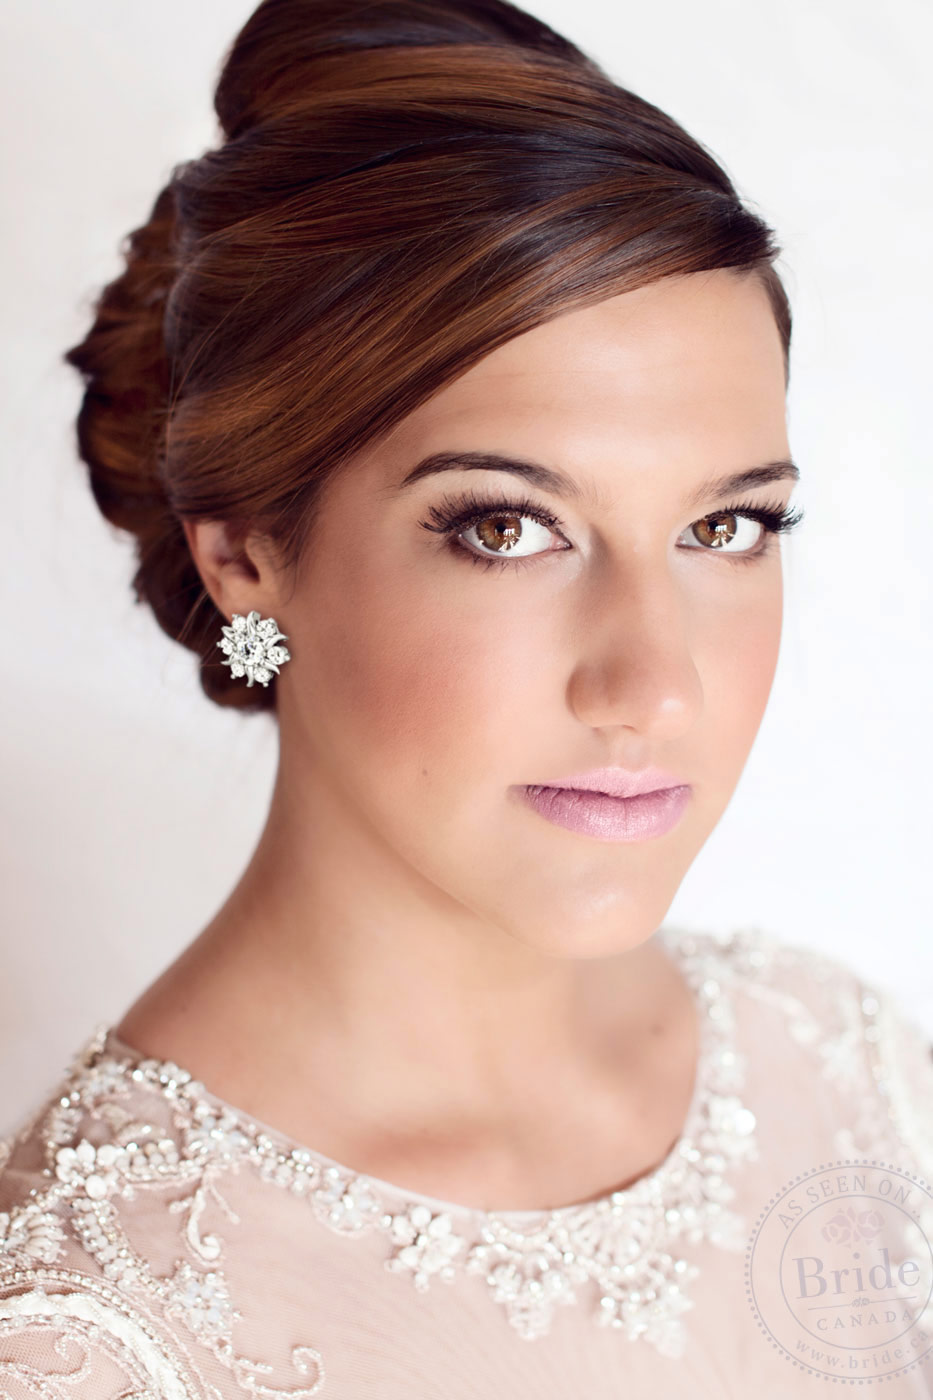 bride.ca | beauty: hair & makeup